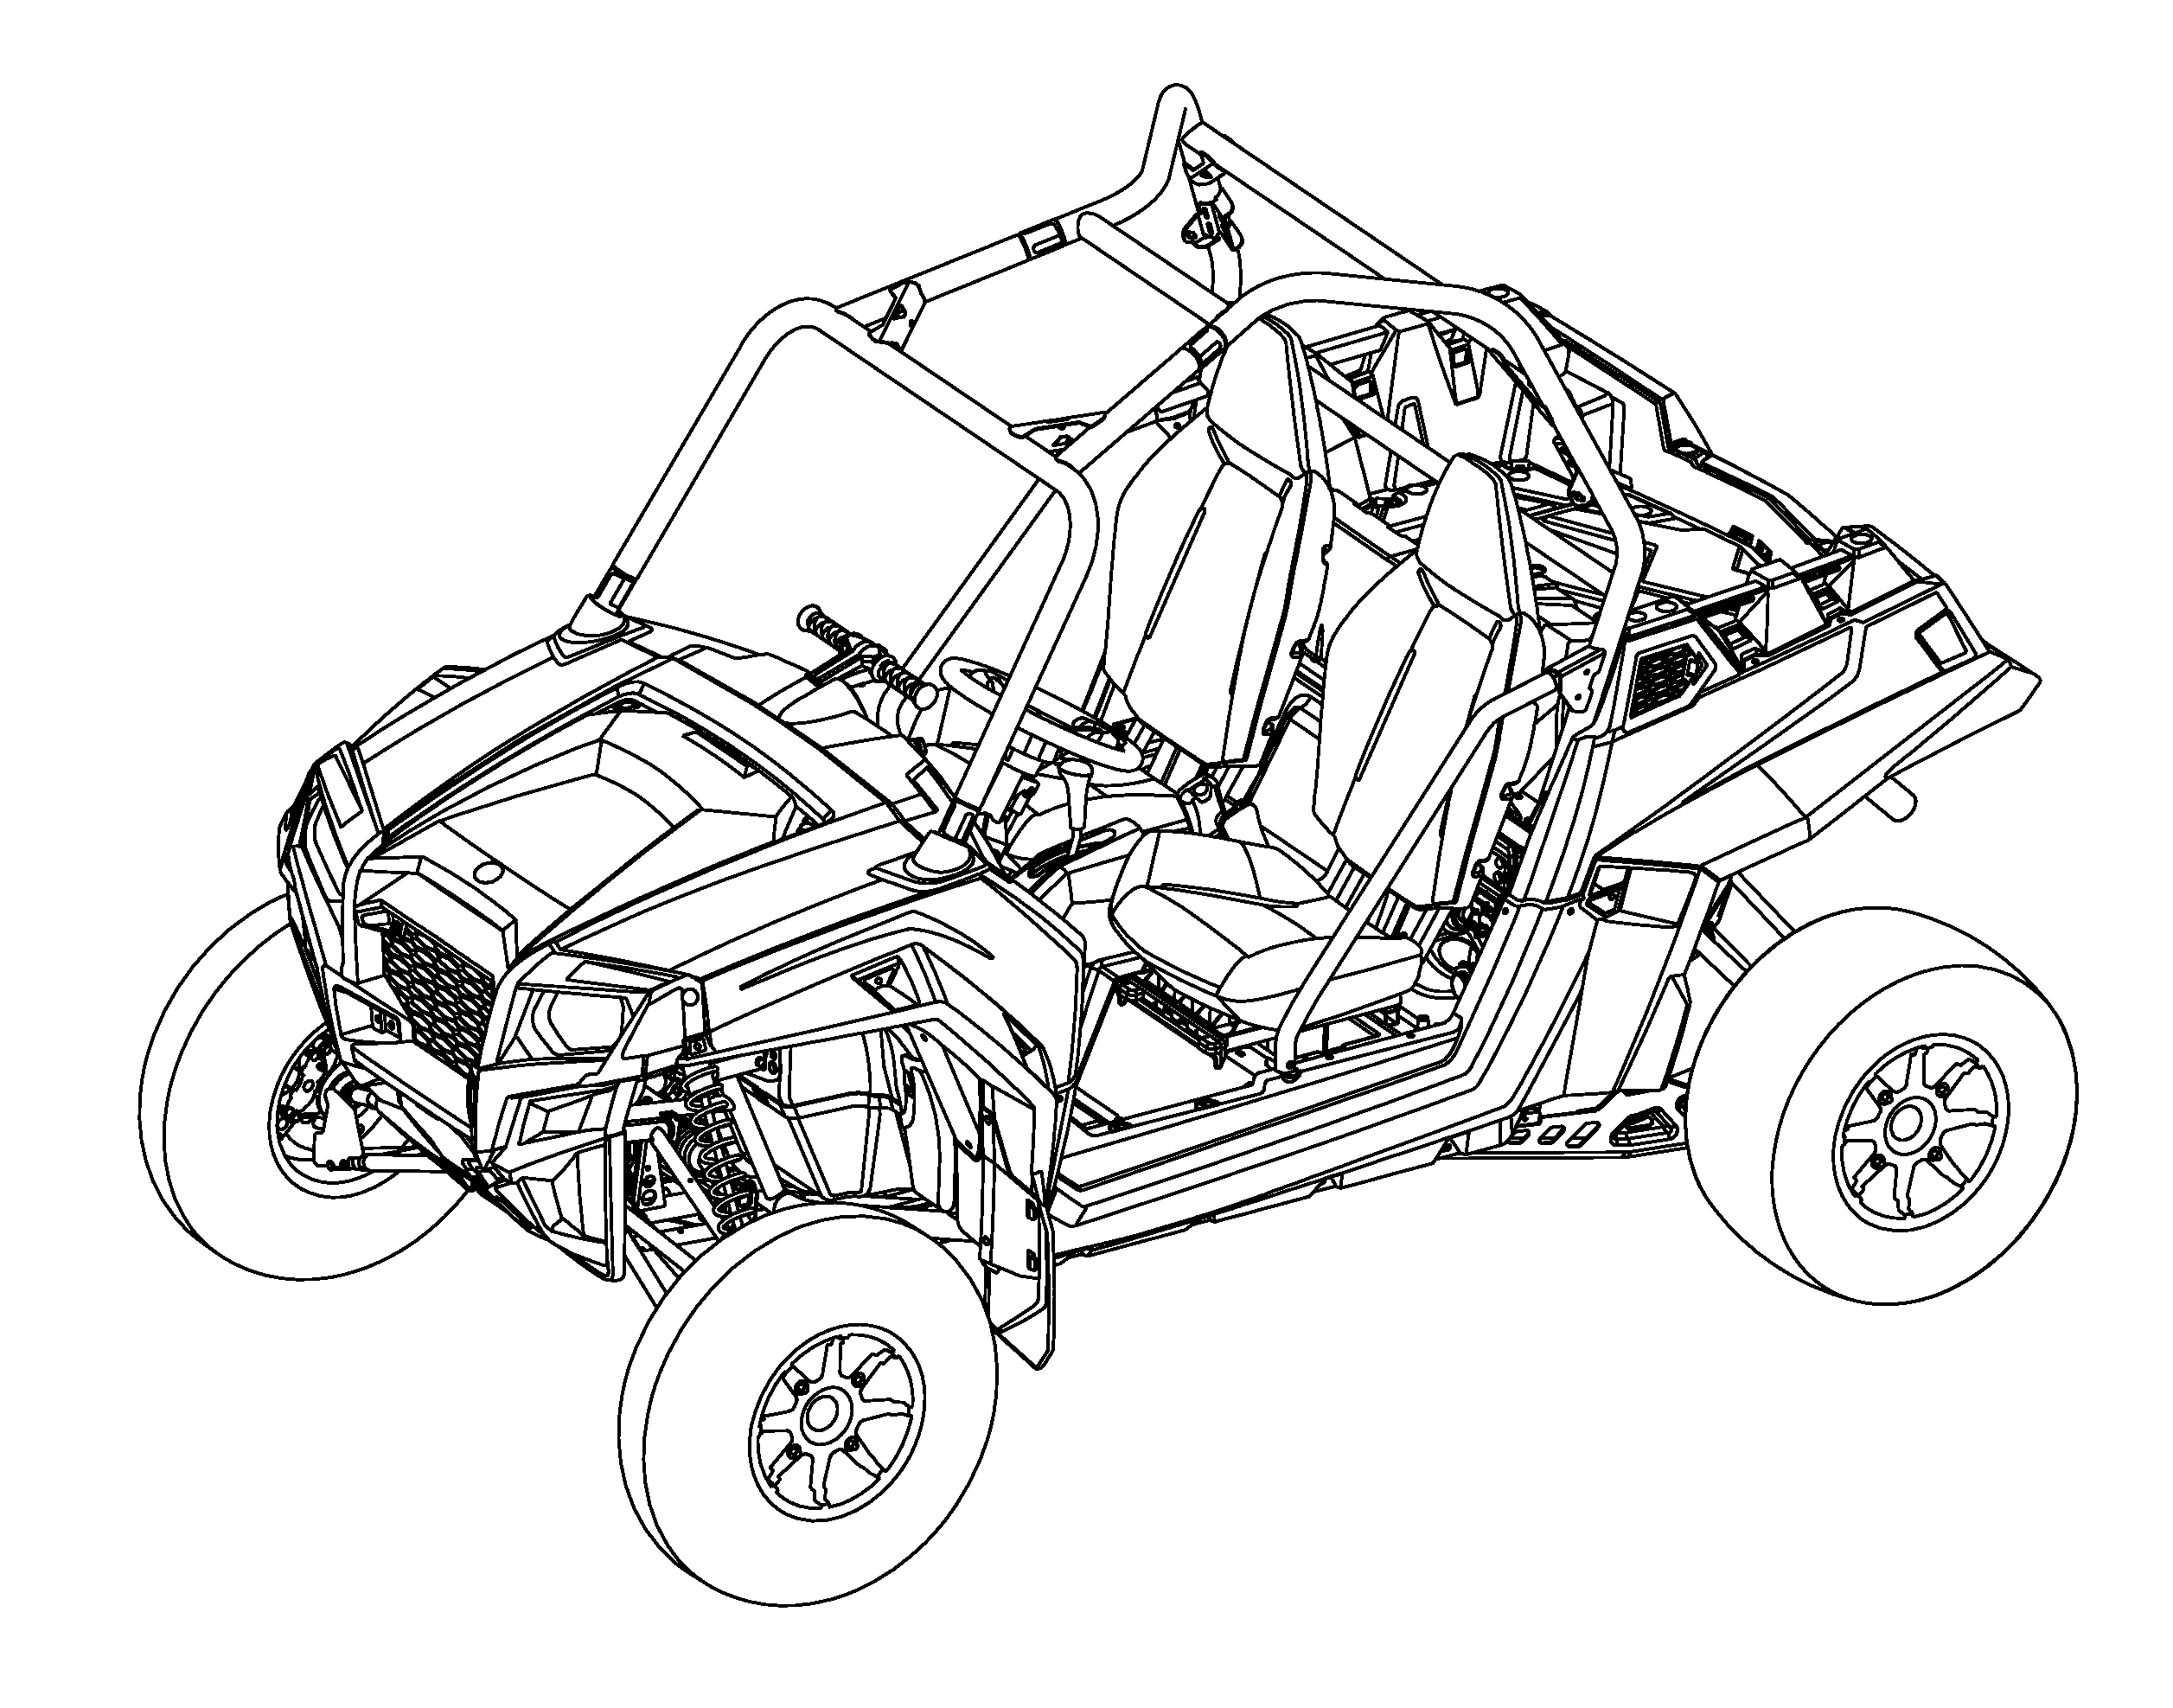 all terrain vehicle coloring pages - photo#9